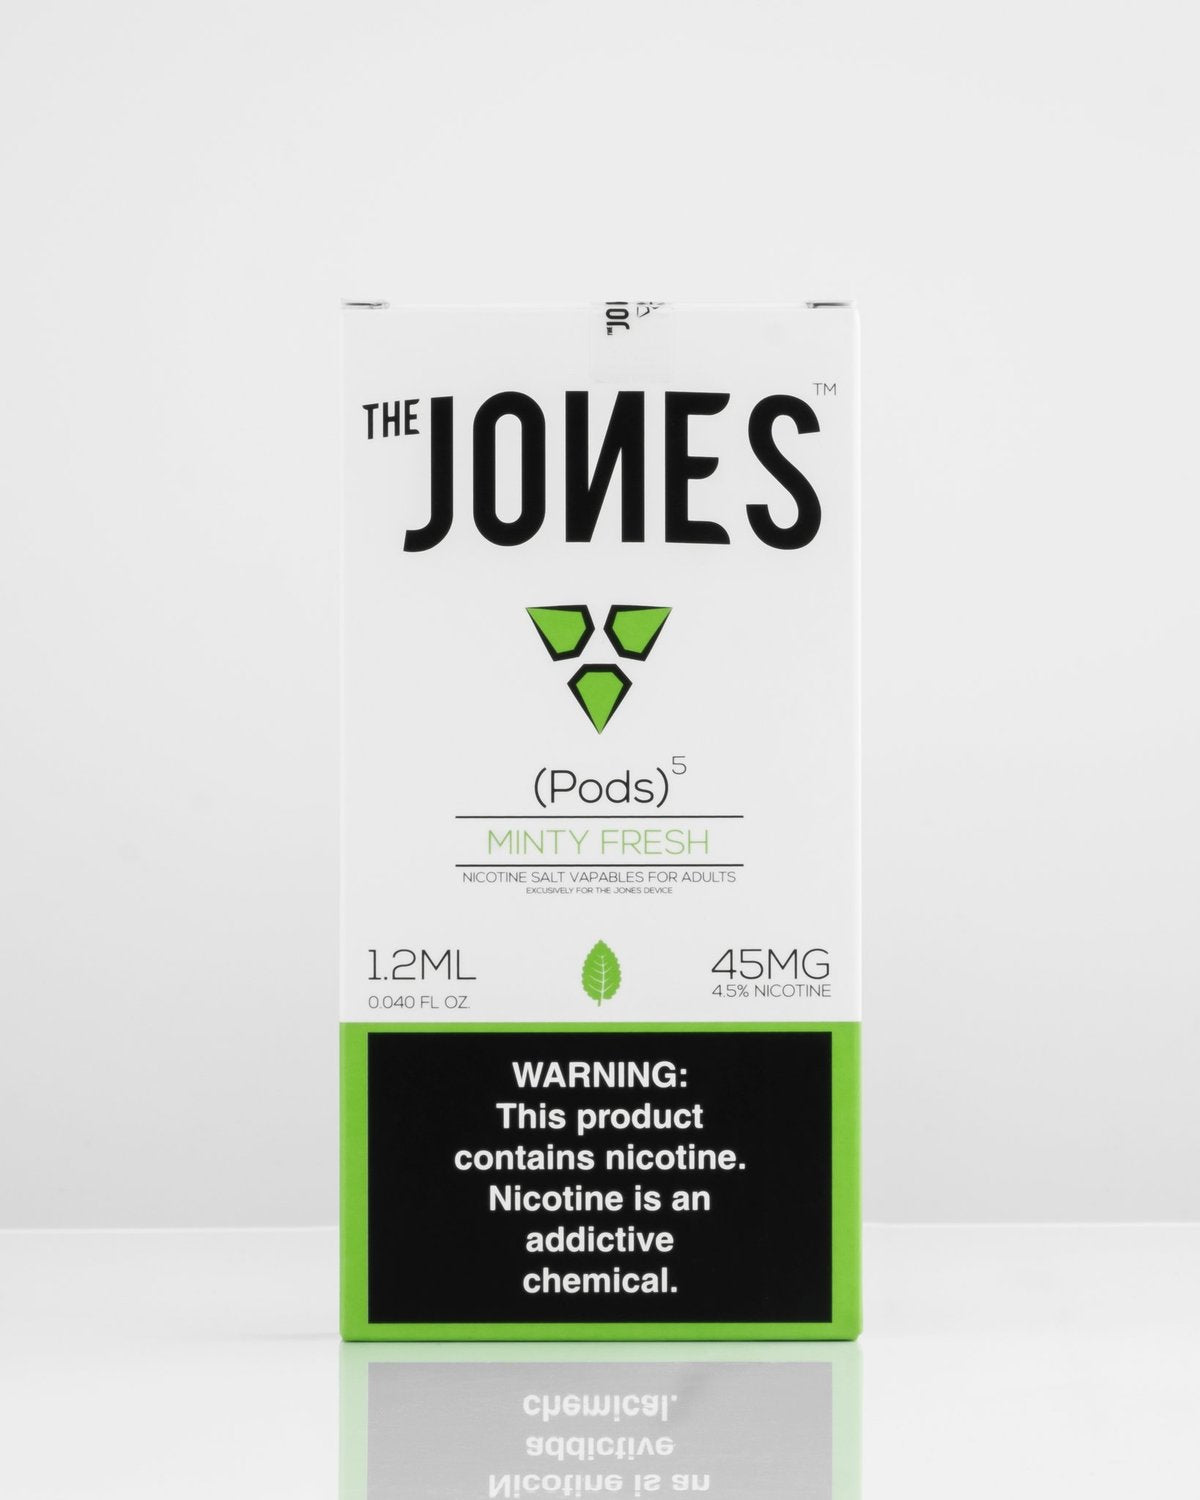 THE JONES PODS MINTY FRESH 5 PACK *JUUL COMPATIBLE*